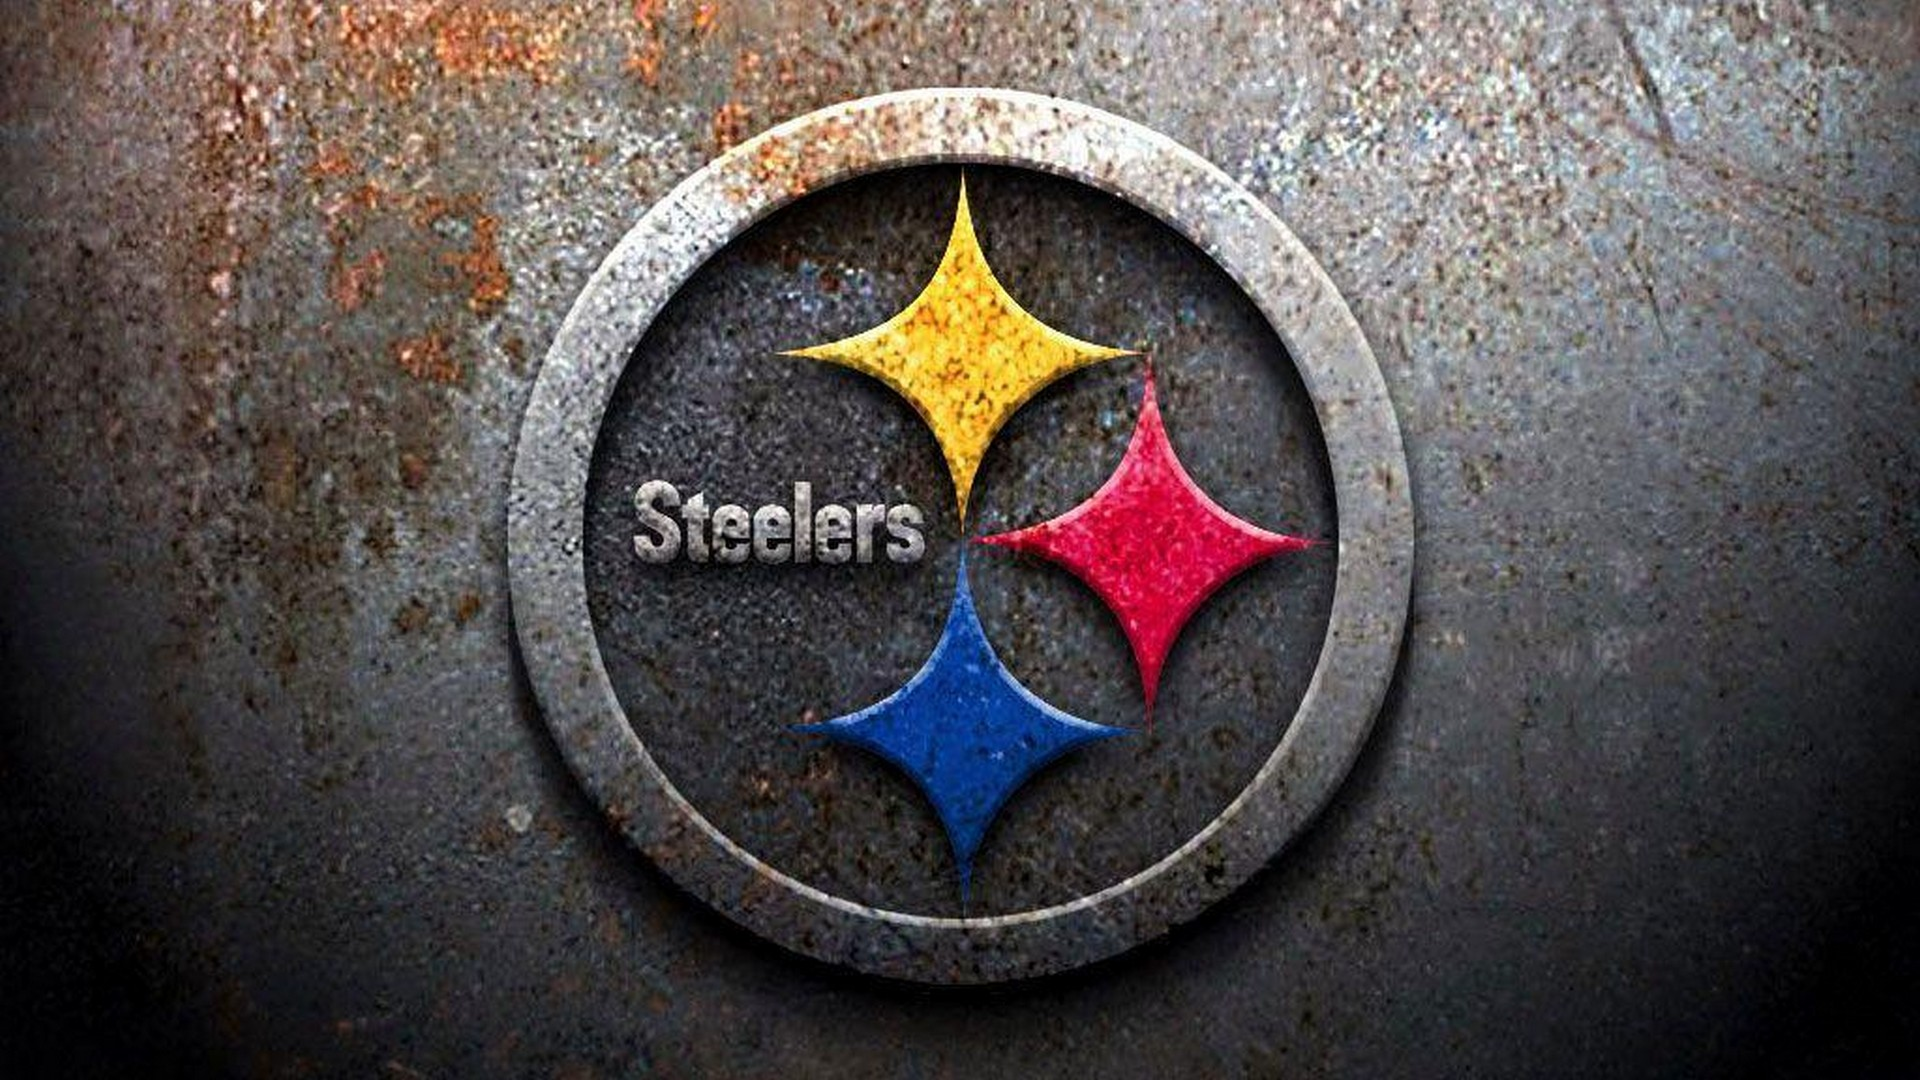 1920x1080 - Steelers Desktop 10